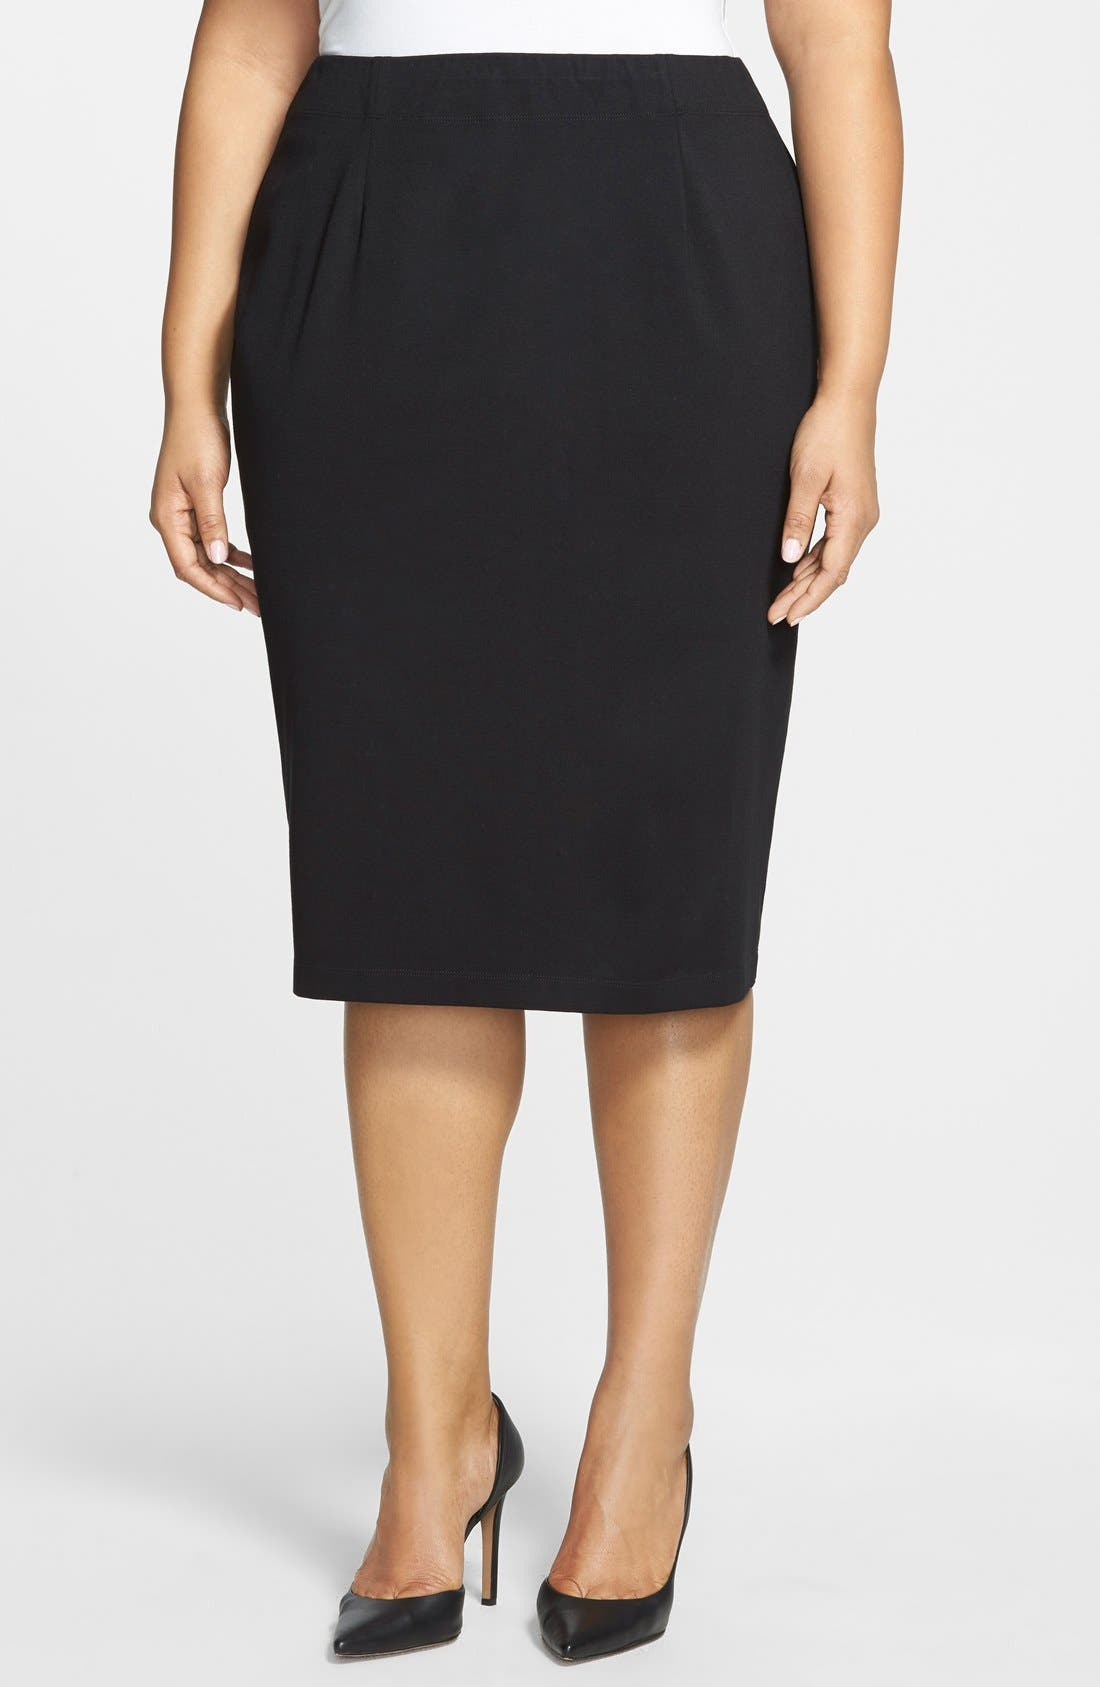 Alternate Image 1 Selected - Eileen Fisher Ponte Knit Pencil Skirt (Plus)